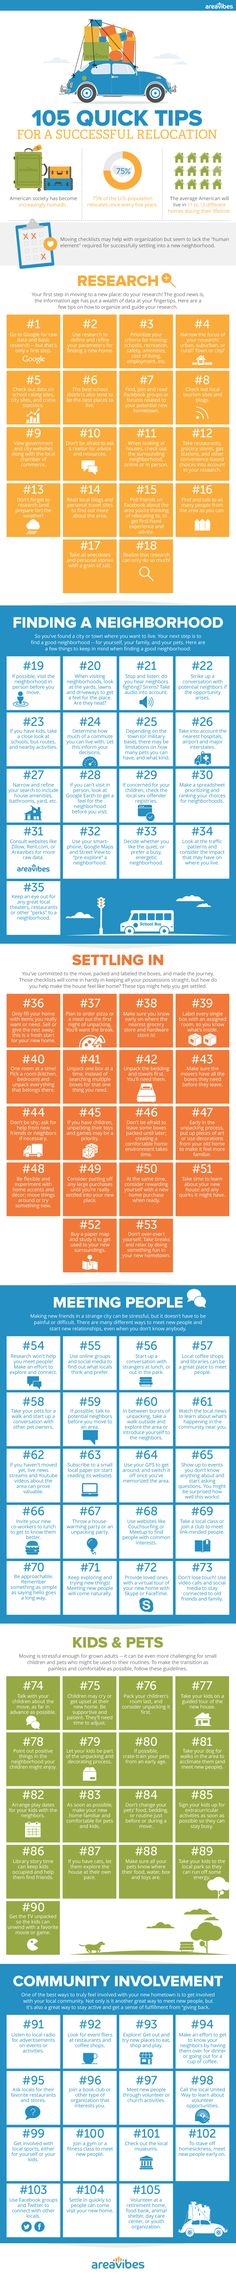 105 TIPS FOR A SUCCESSFUL RELOCATION [INFOGRAPHIC]